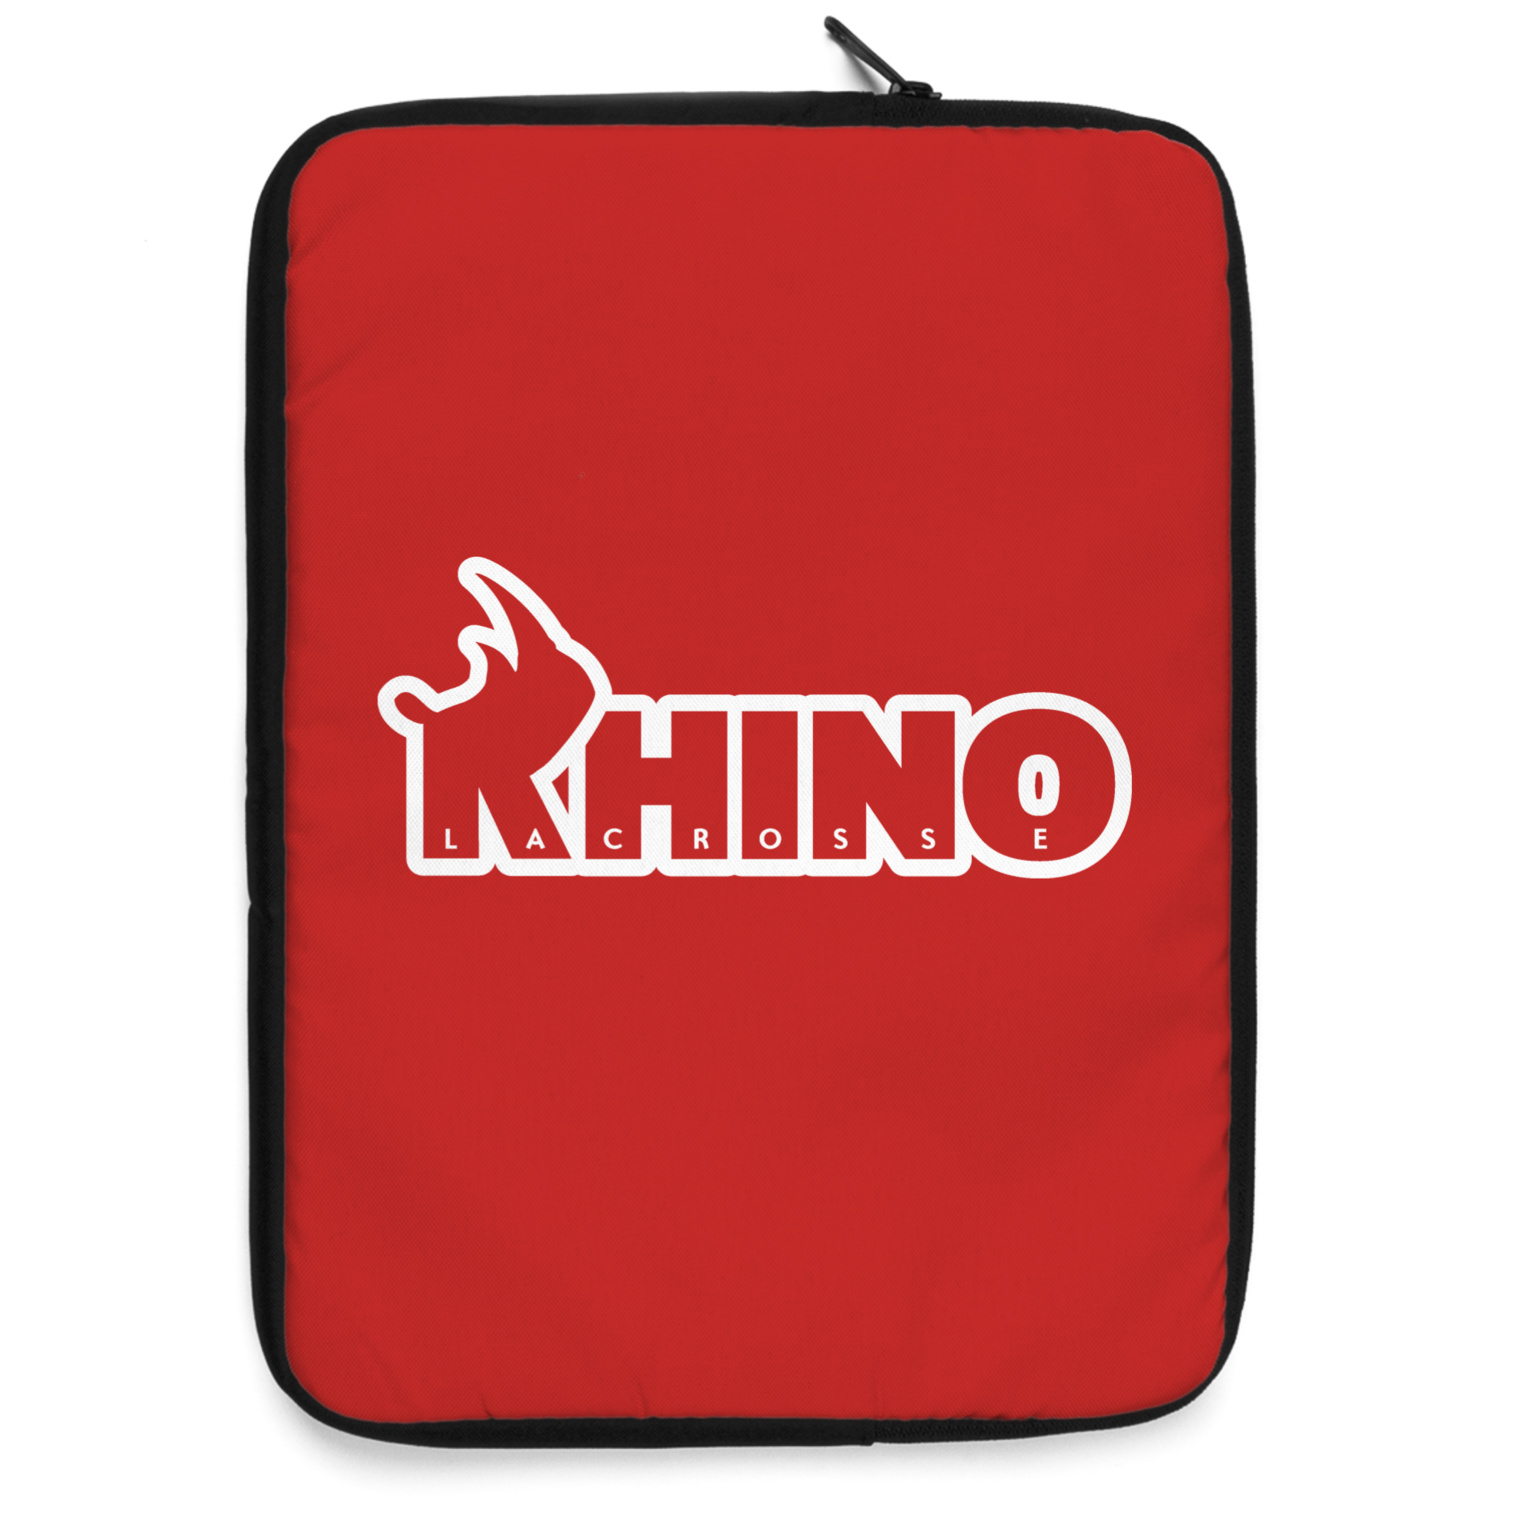 Rhino Lacrosse Laptop Sleeve